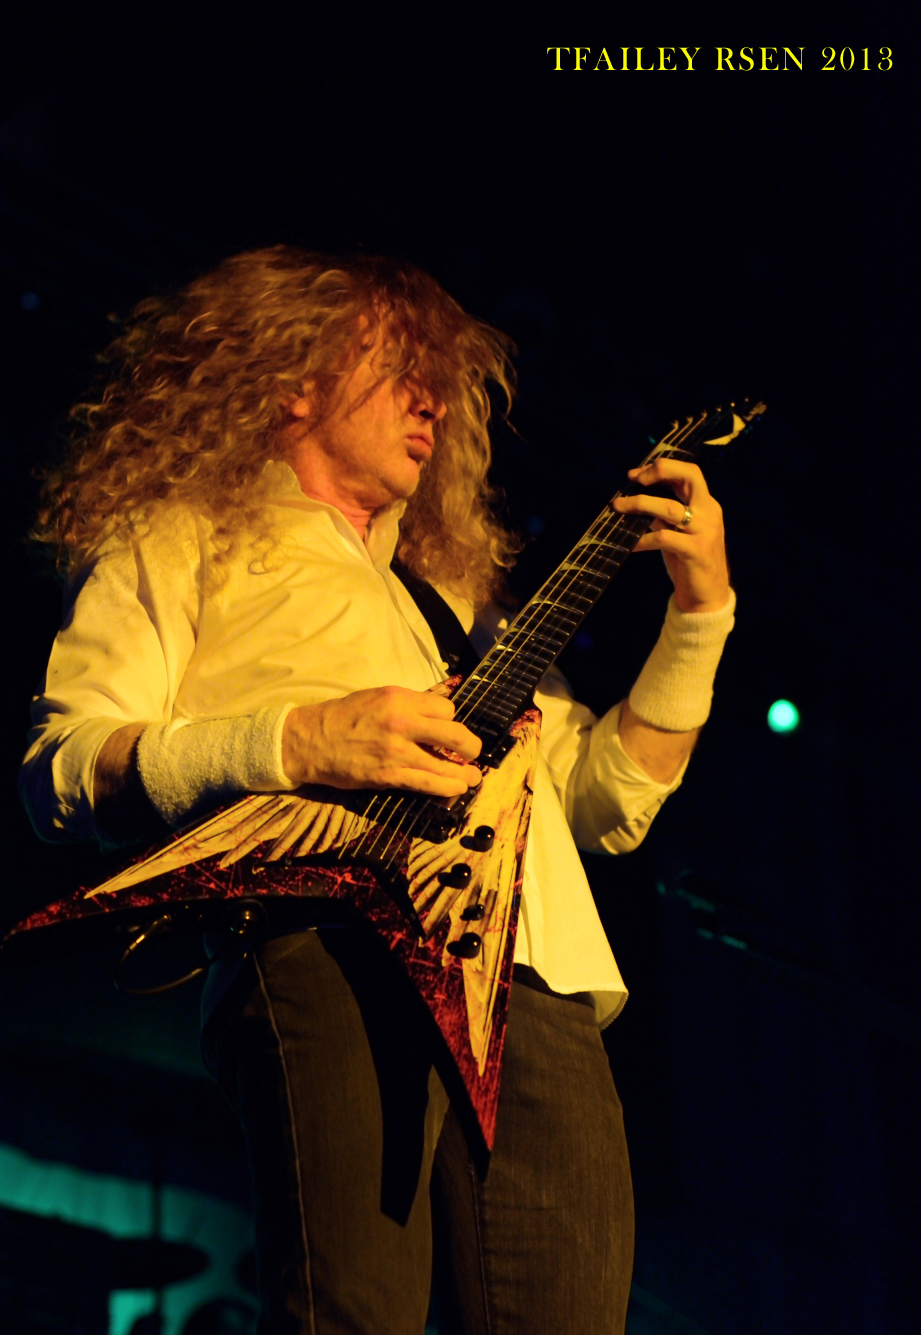 David Mustaine Pictures and Photos Getty Images Dave mustaine photo gallery